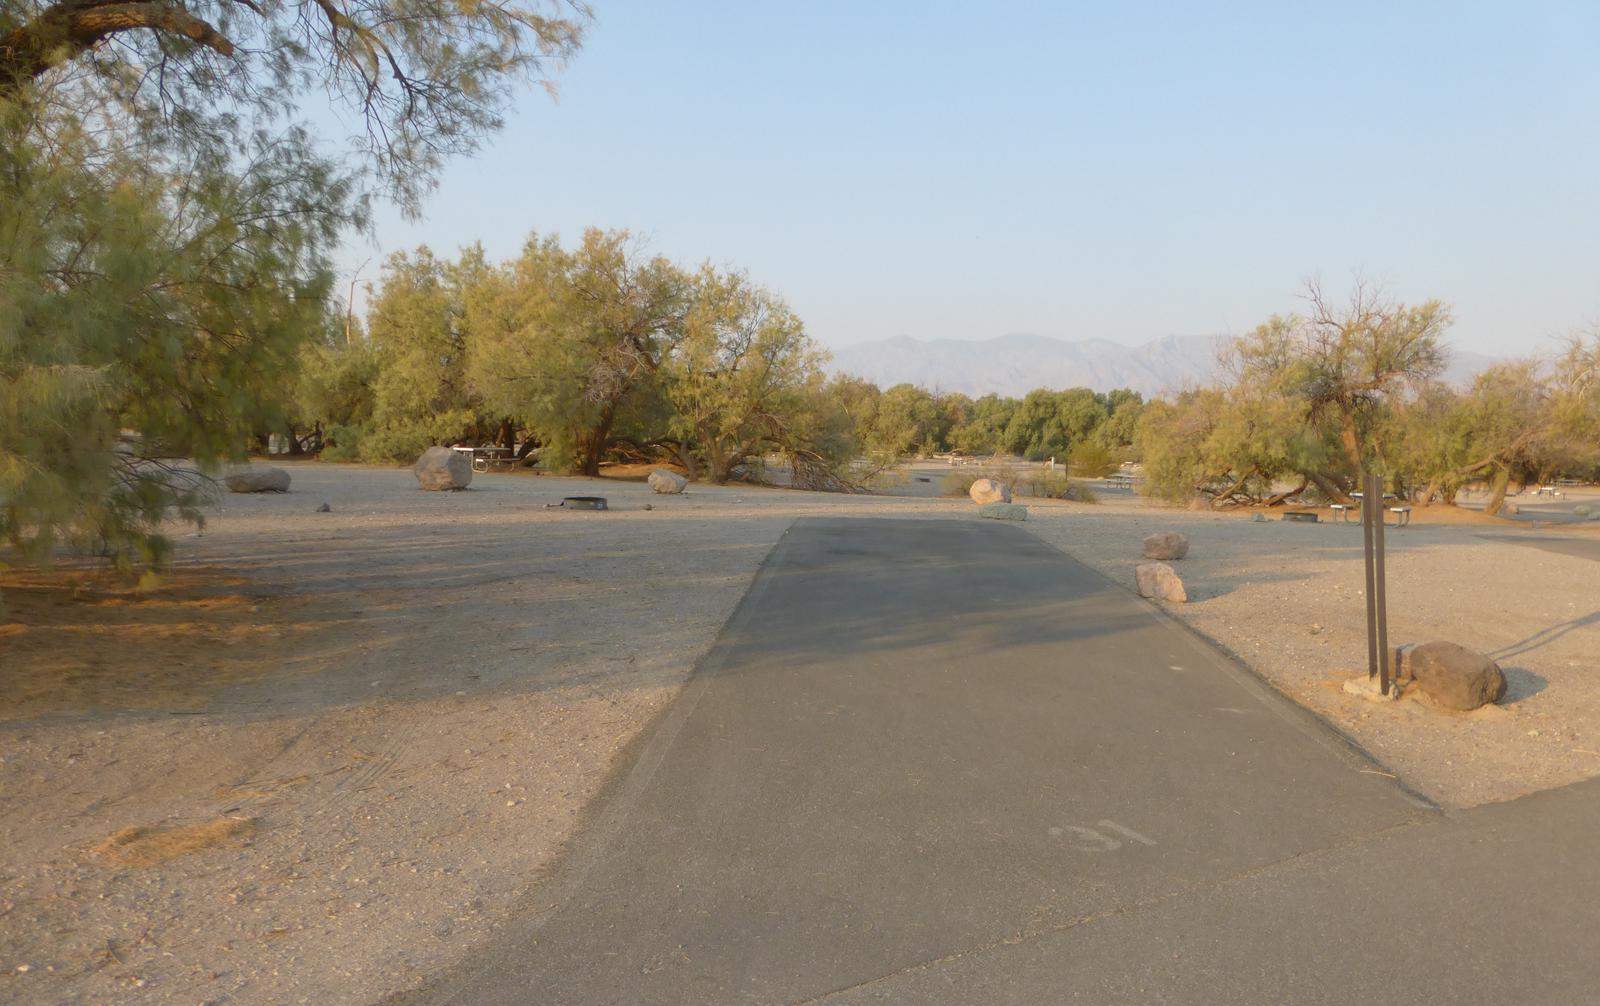 Furnace Creek Campground standard nonelectric site #31 with picnic table and fire ring.